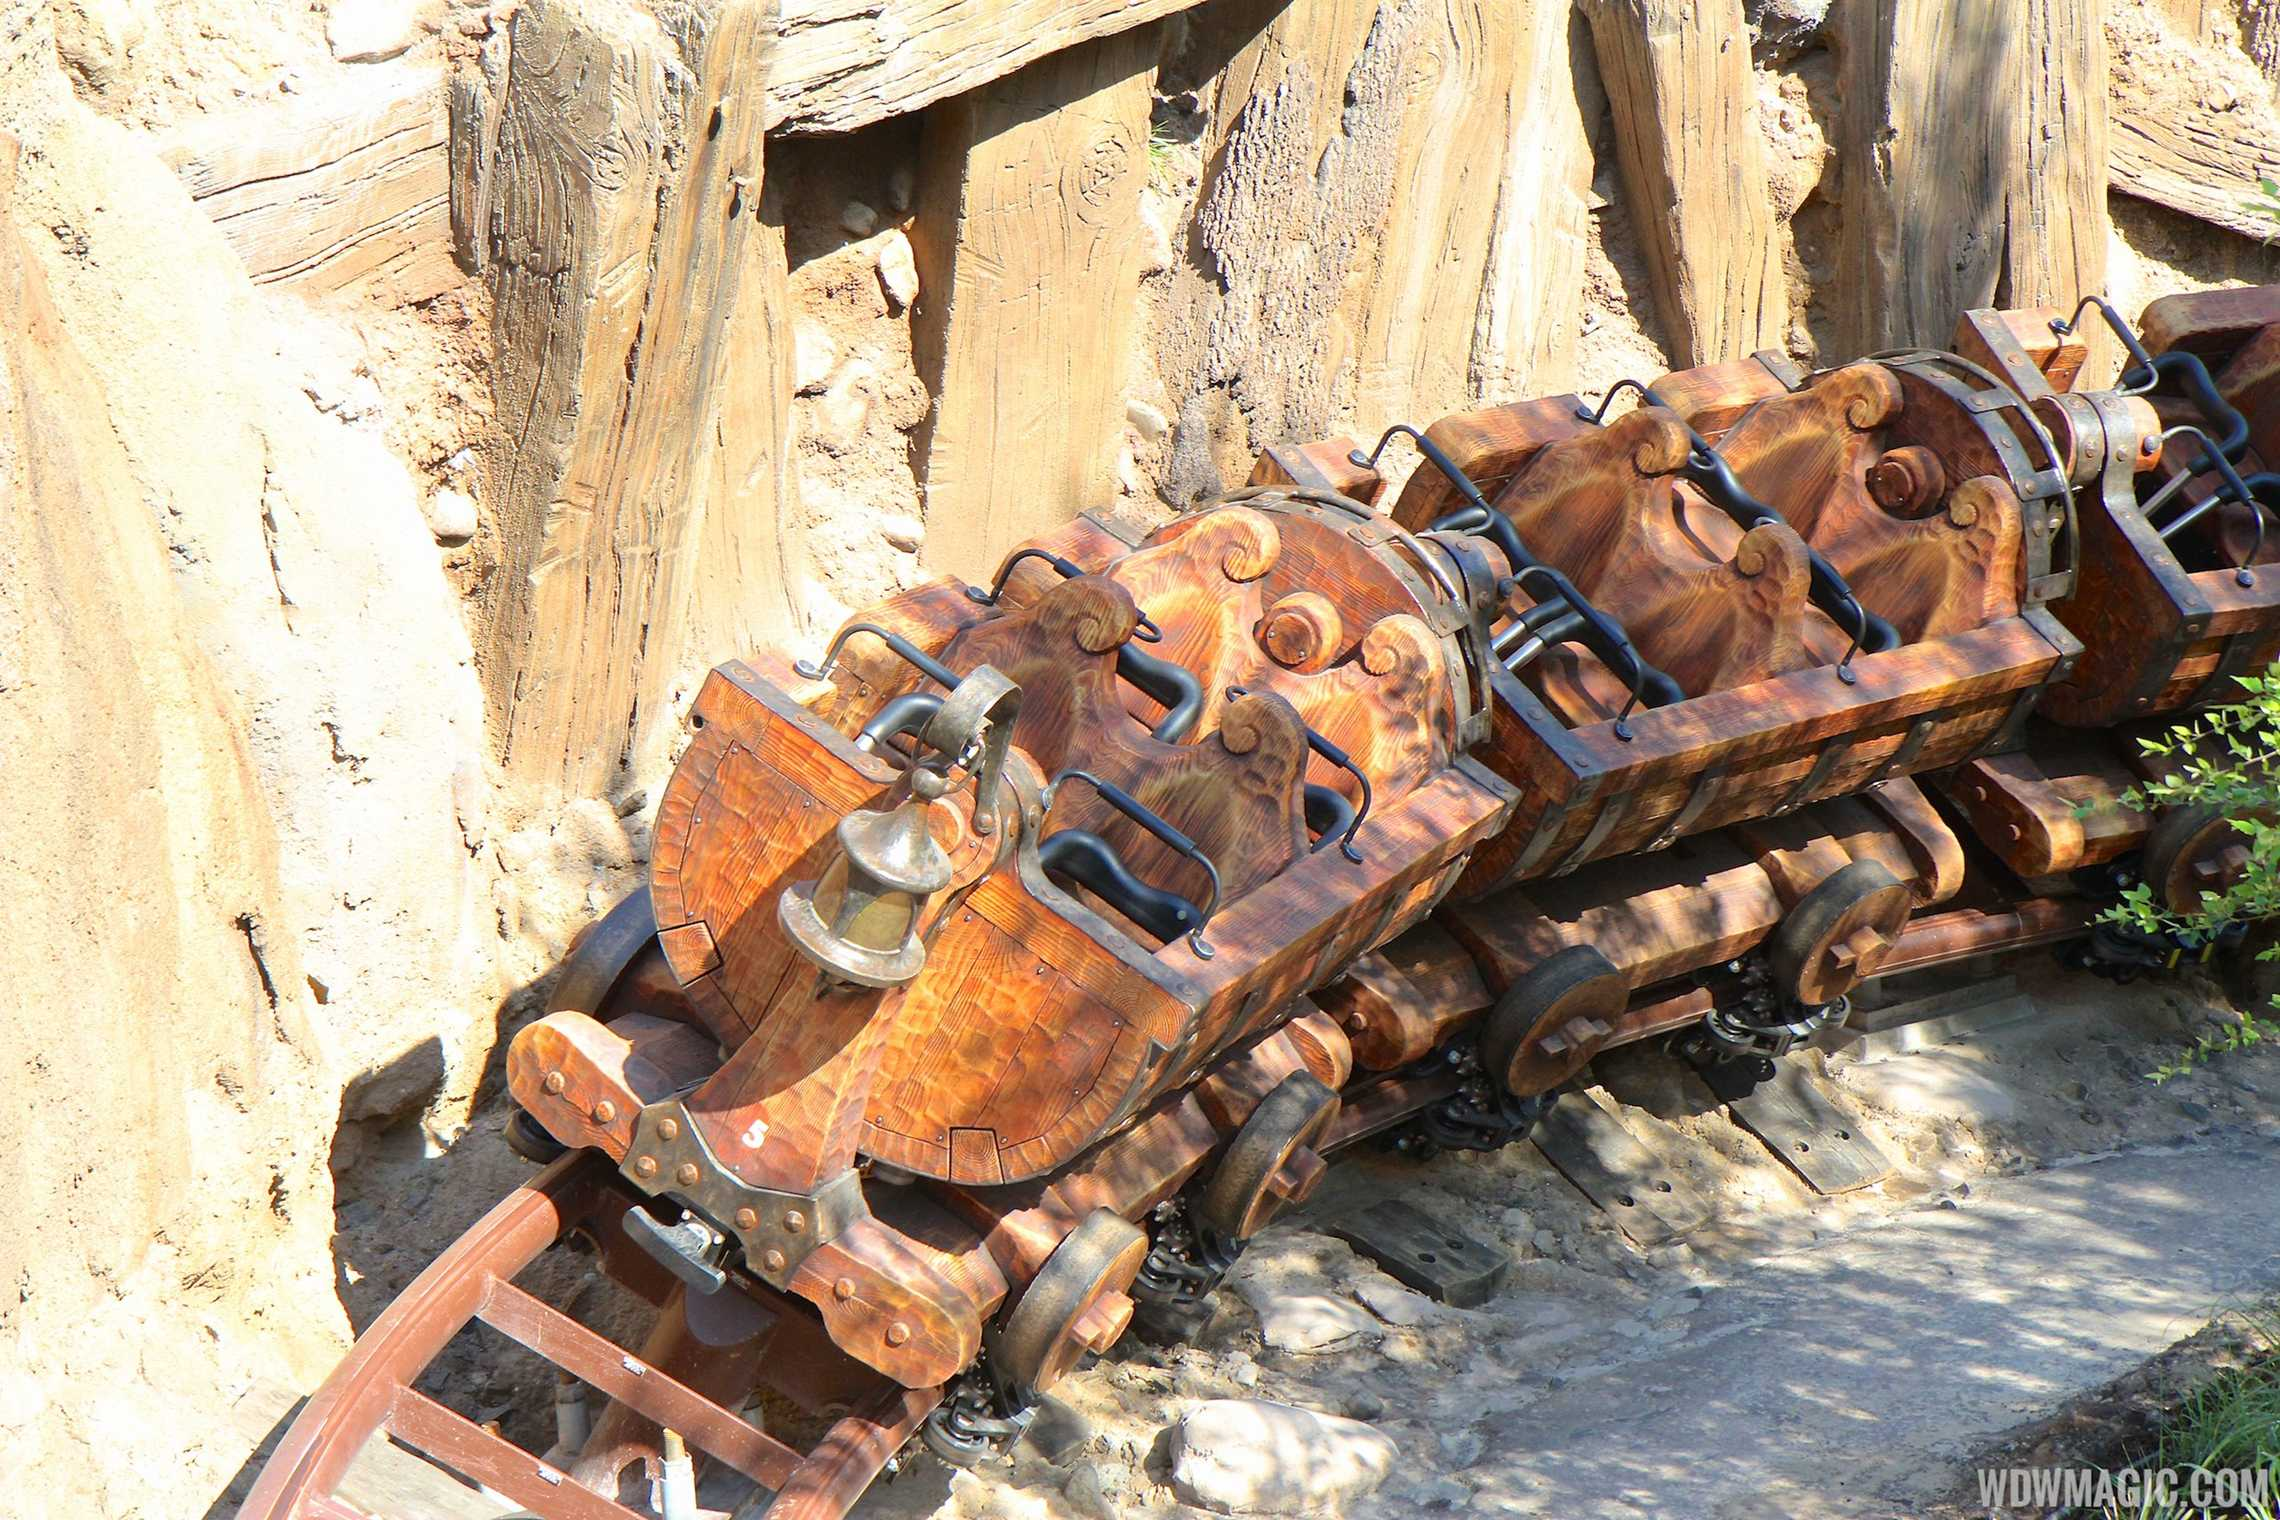 Seven Dwarfs Mine Train car